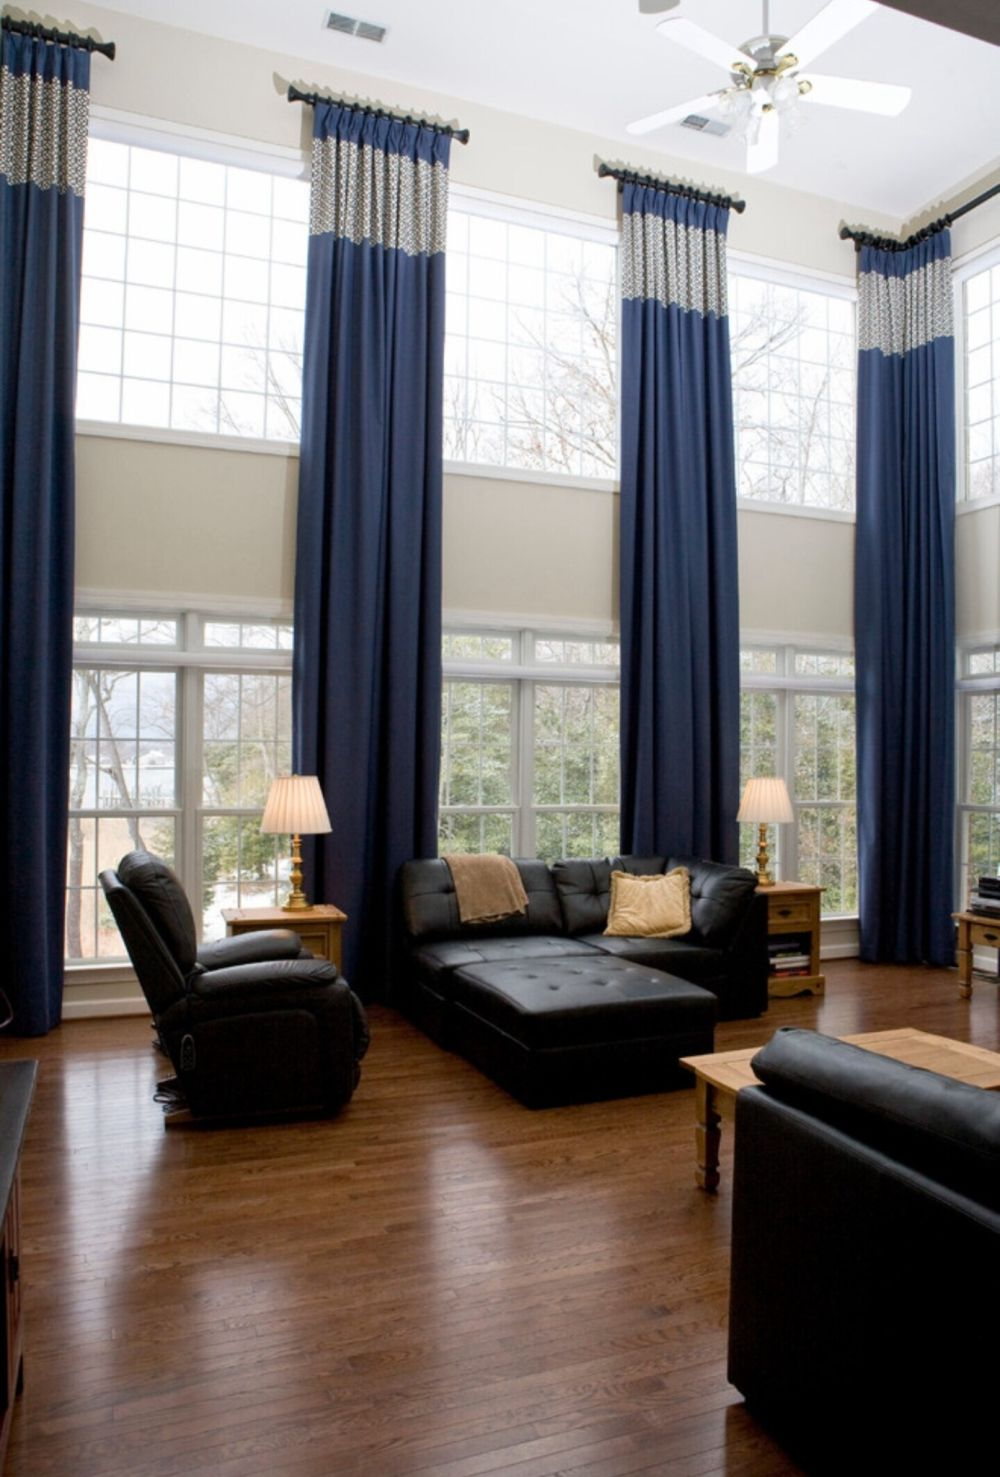 Curtains are more than just window dressing - they are an integral part of home decor.